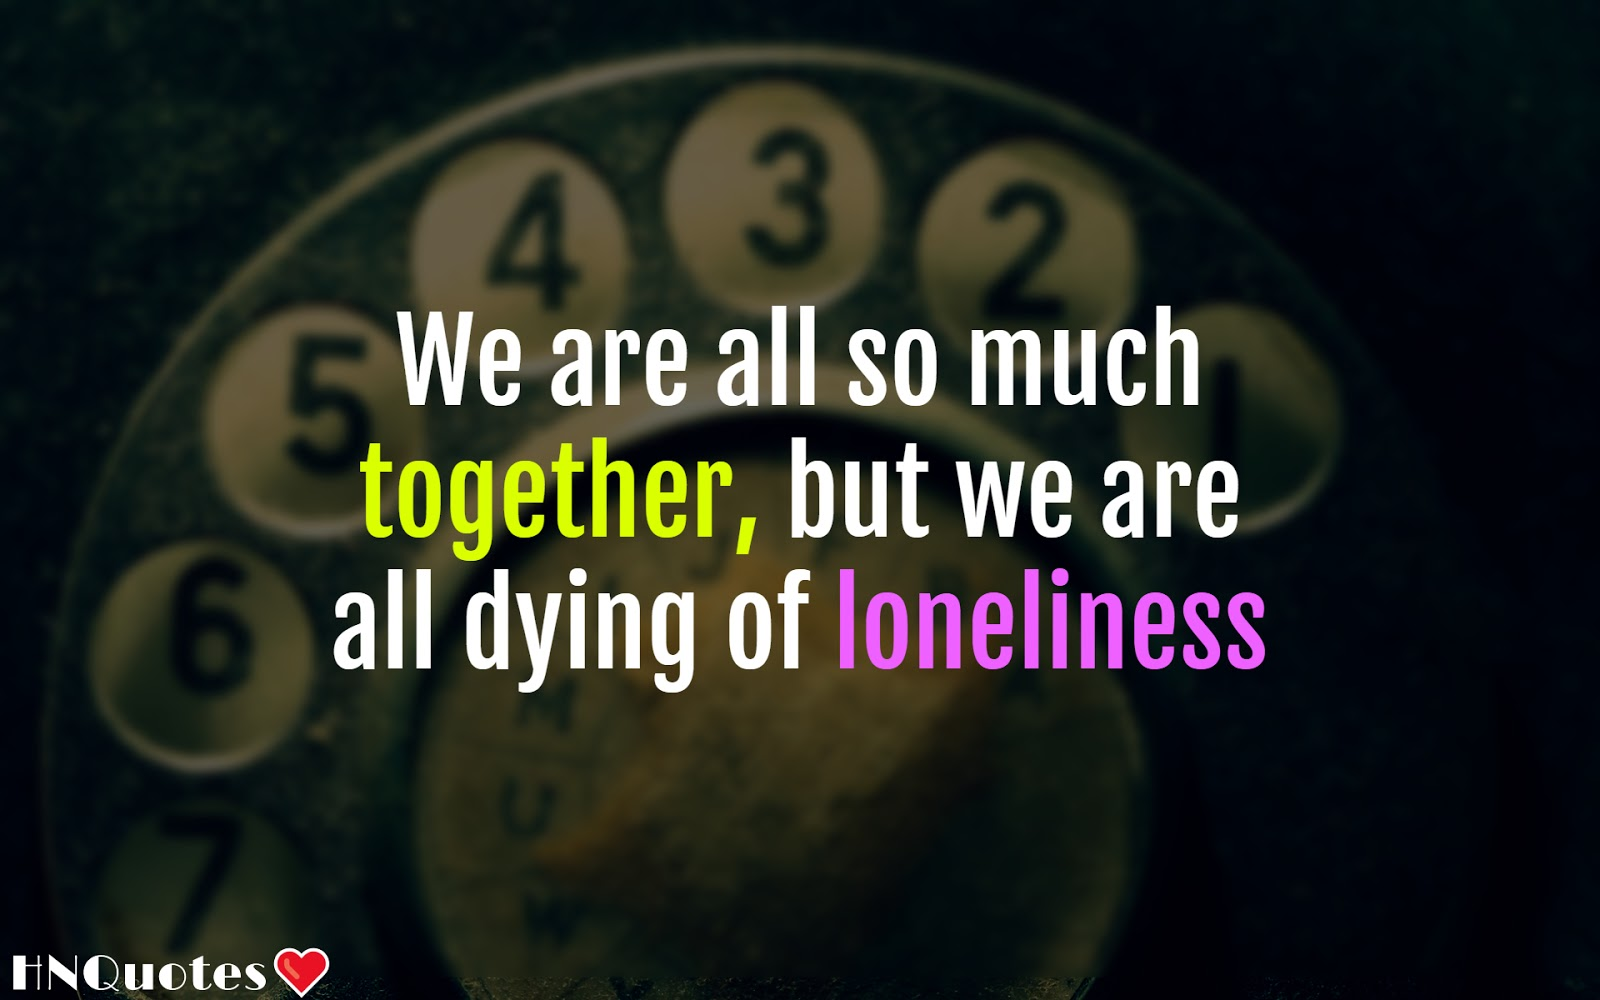 Sad-&-Emotional-Quotes-on-Life-79-Best-Emotional-Quotes[HNQuotes]